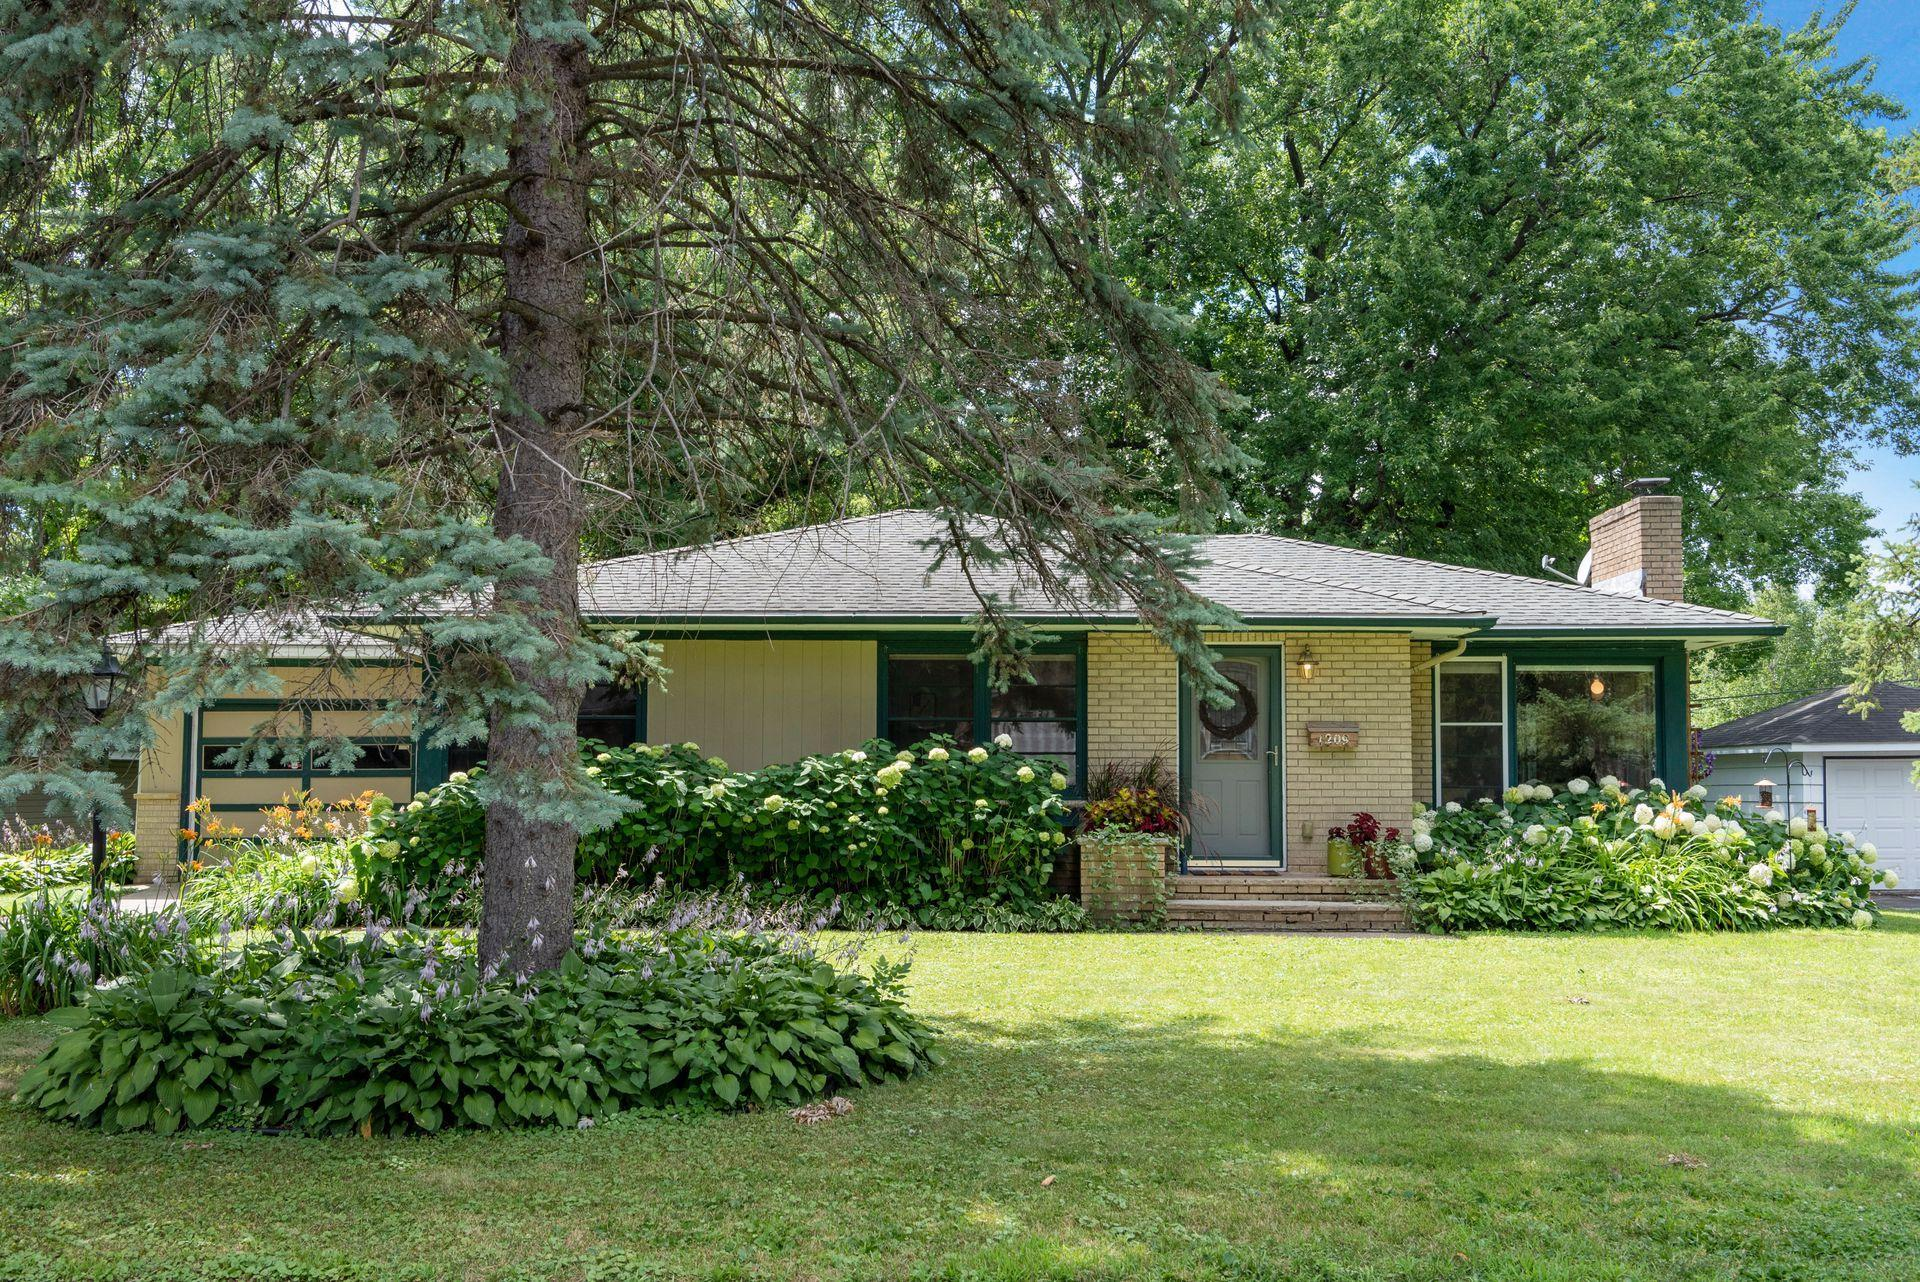 1209 Rhode Island Avenue N Property Photo - Golden Valley, MN real estate listing